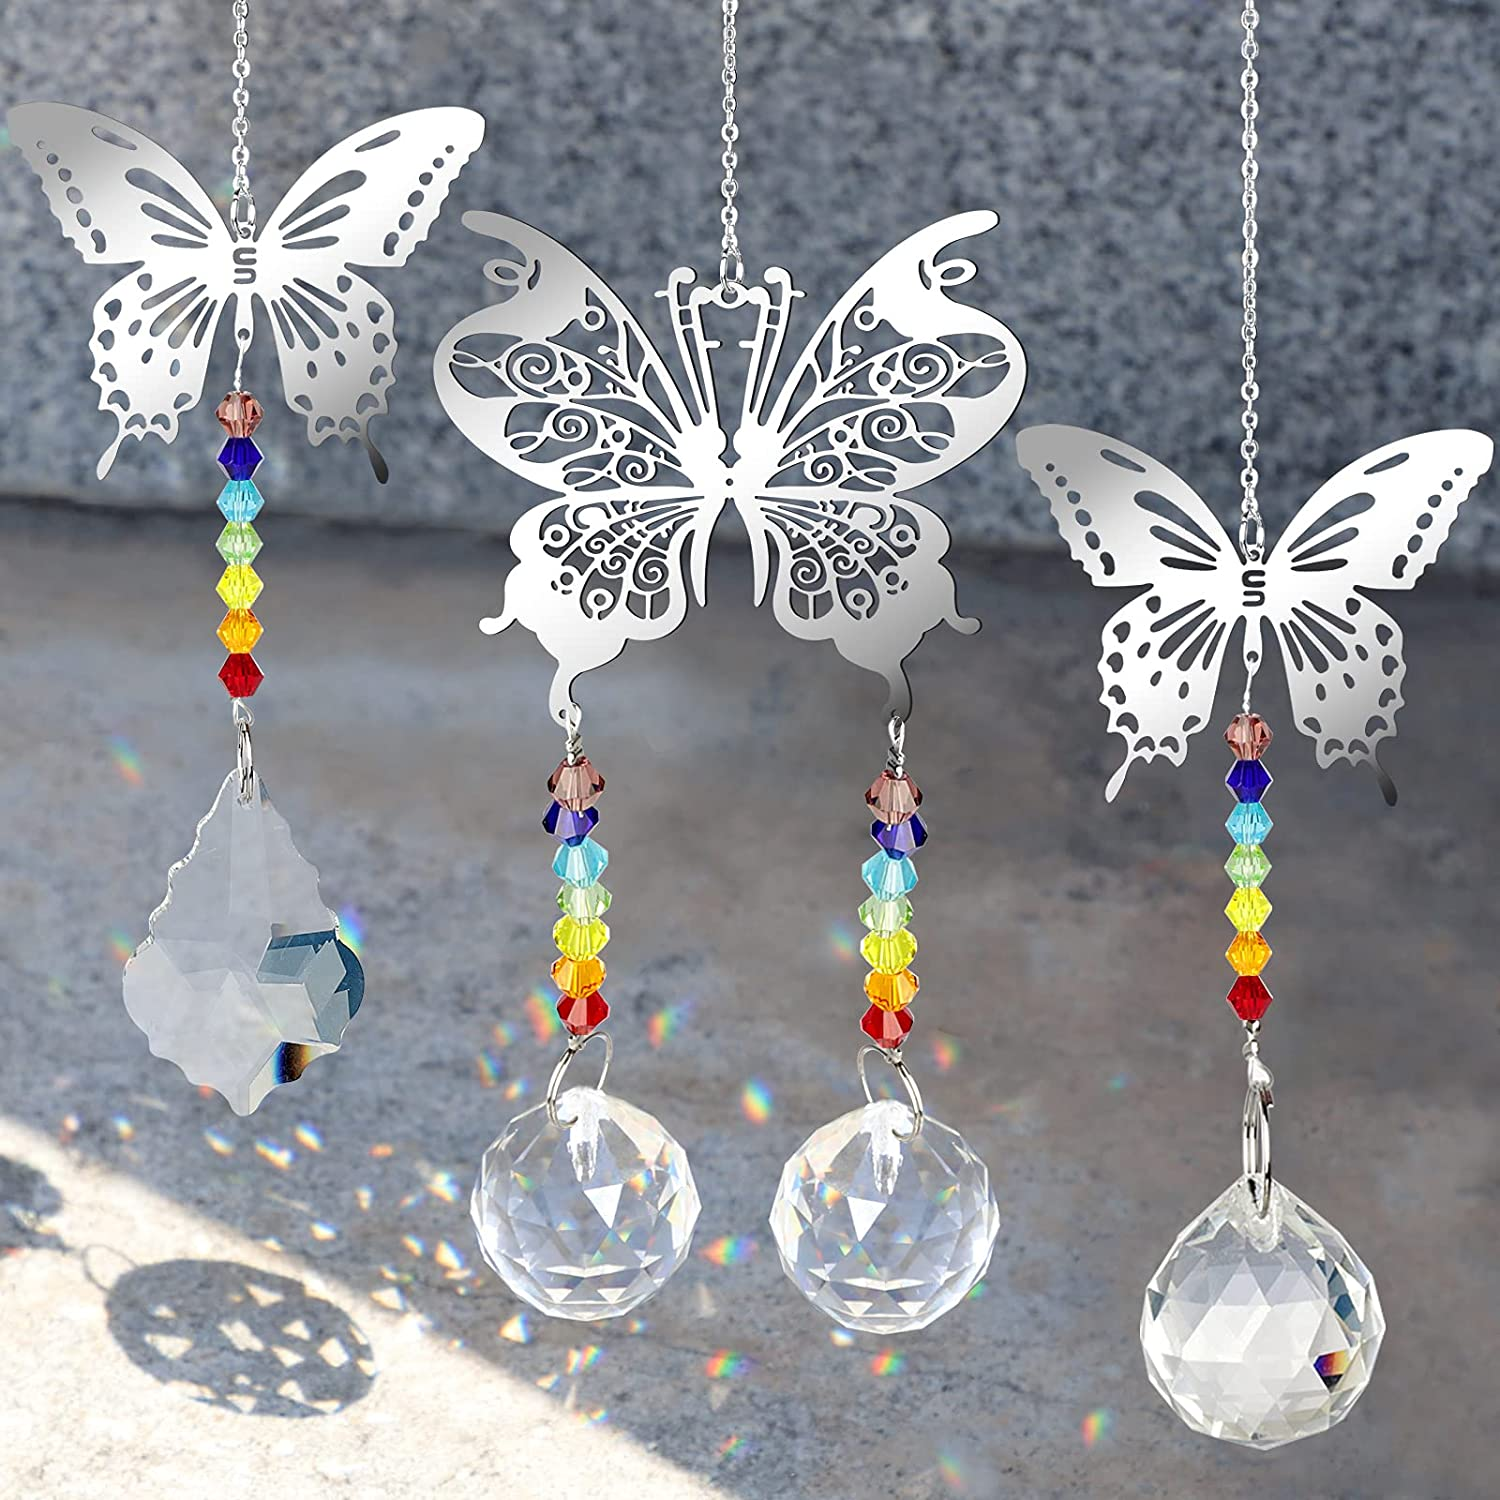 Tucson Mall 3 Pack Crystal Handmade Ball,Hanging Butterfly Safety and trust Orna